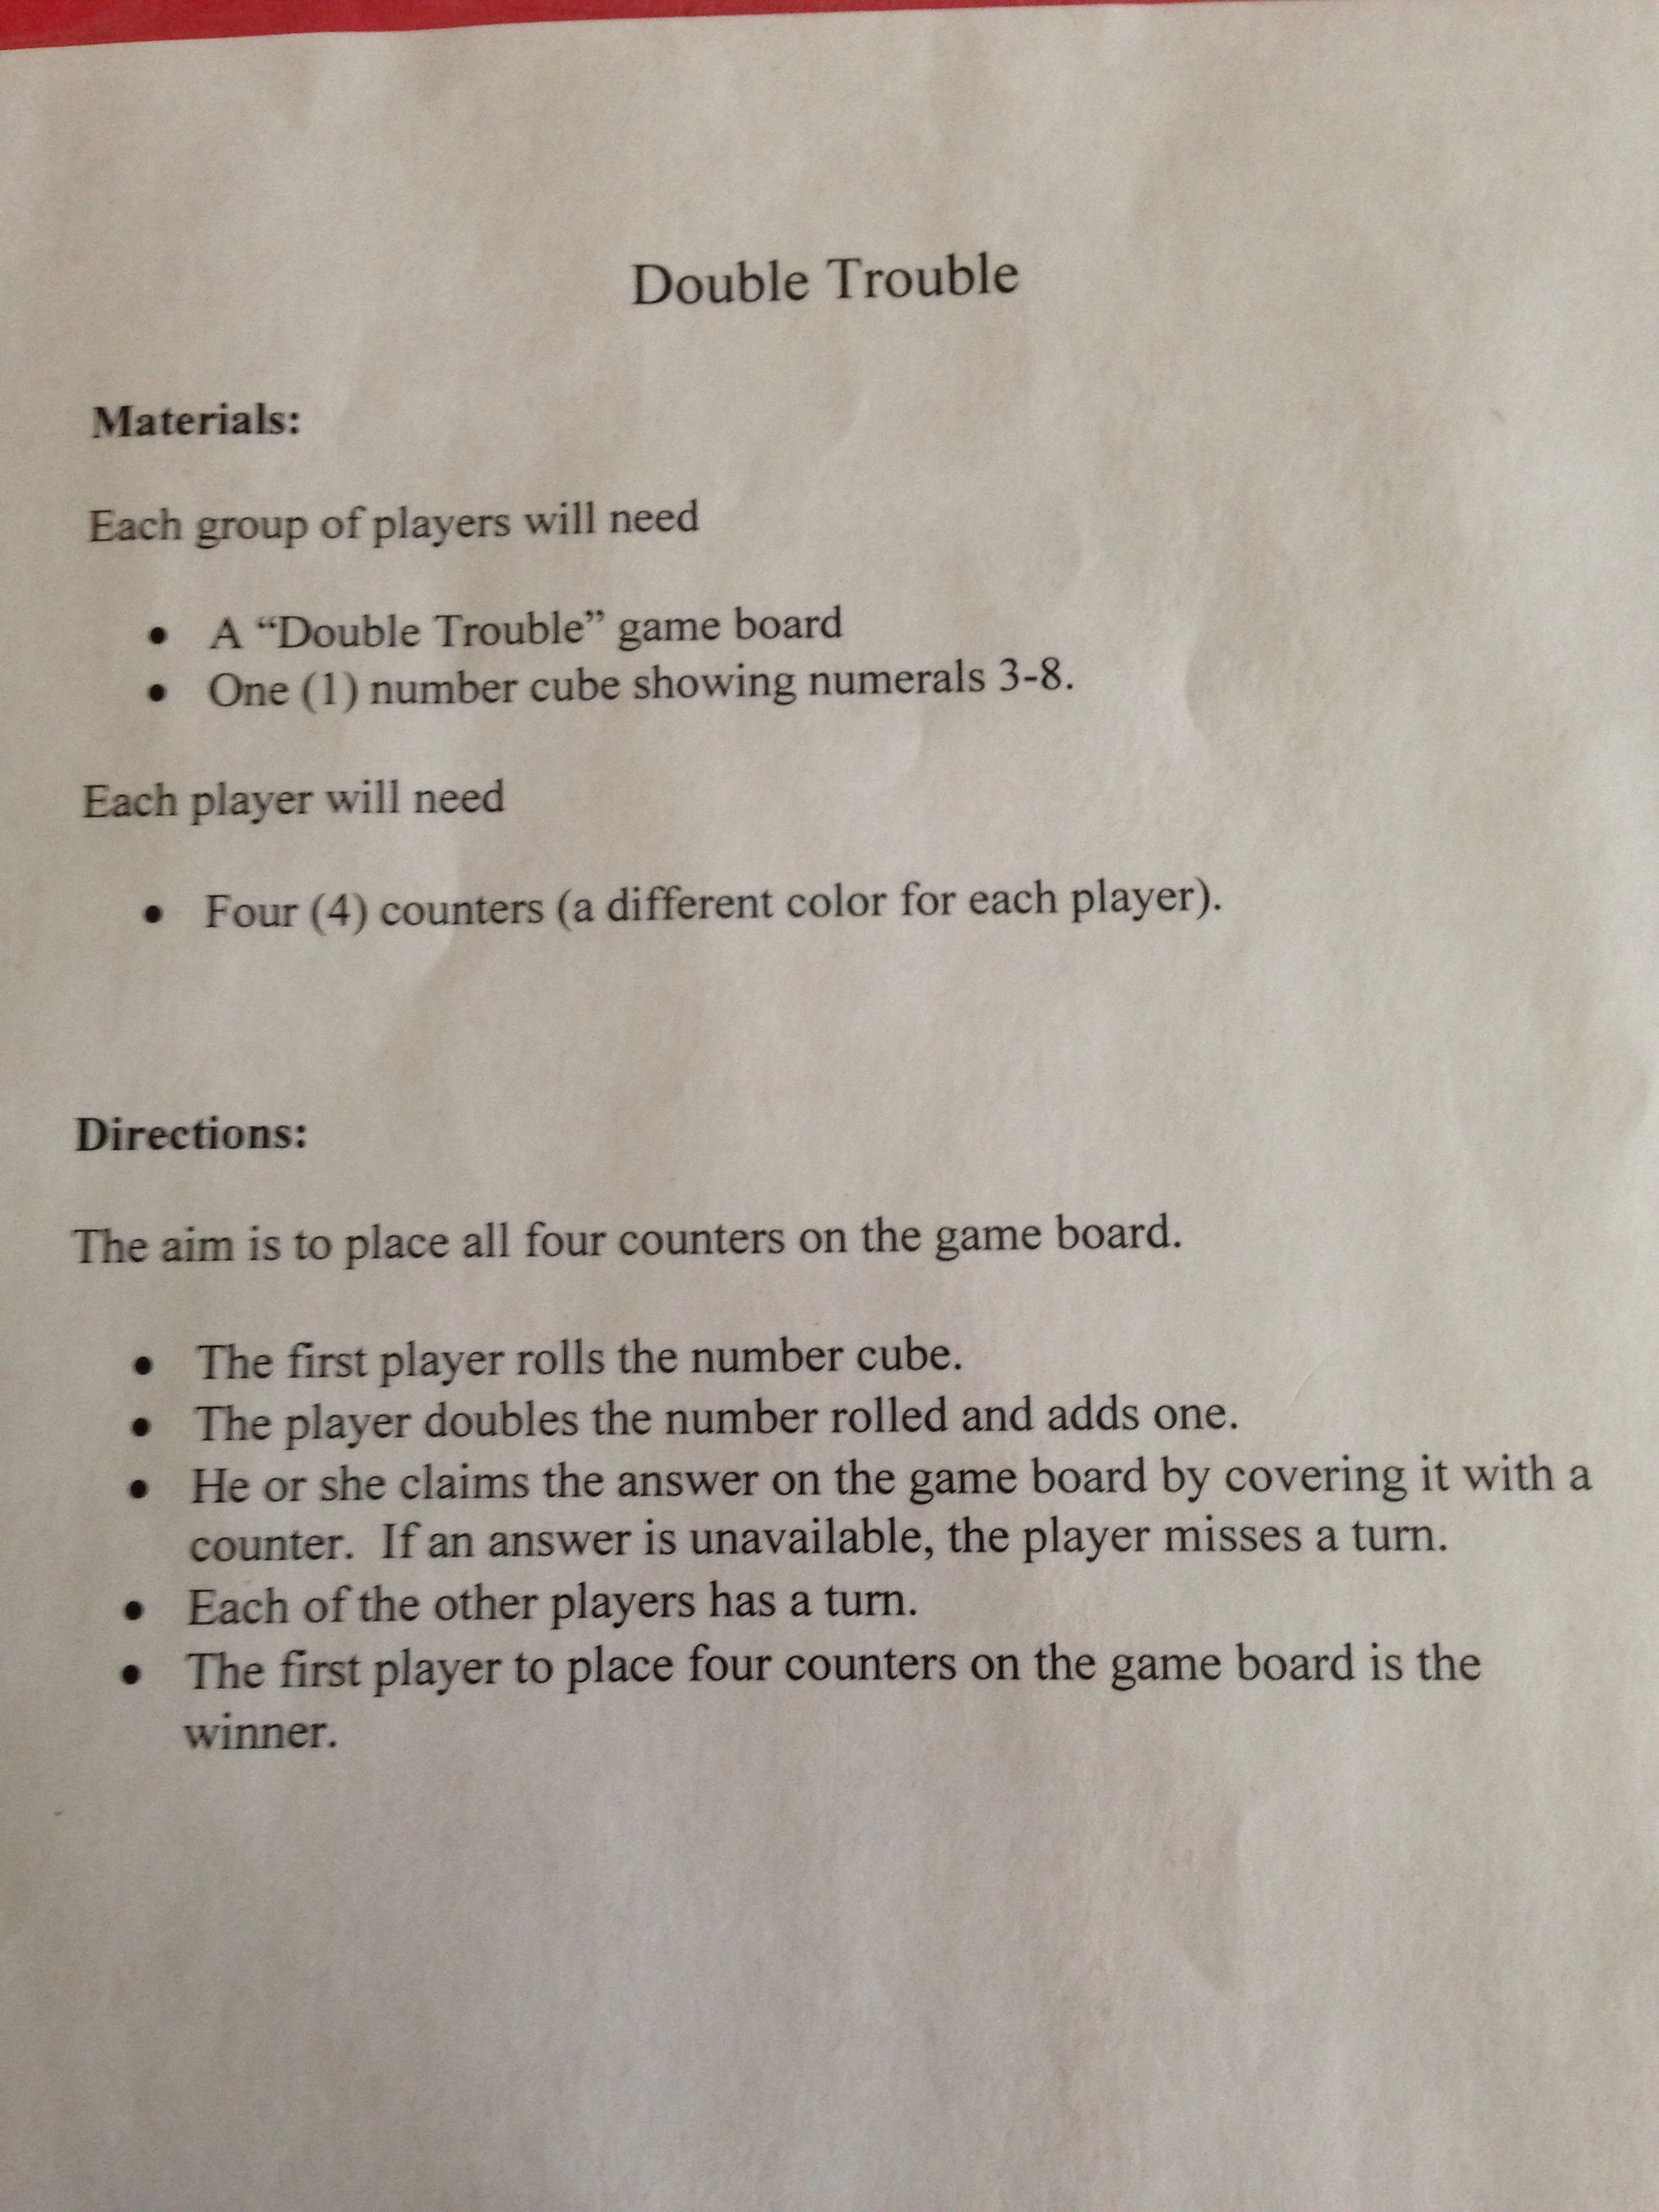 Double Trouble Math Game Directions Math Pinterest Double